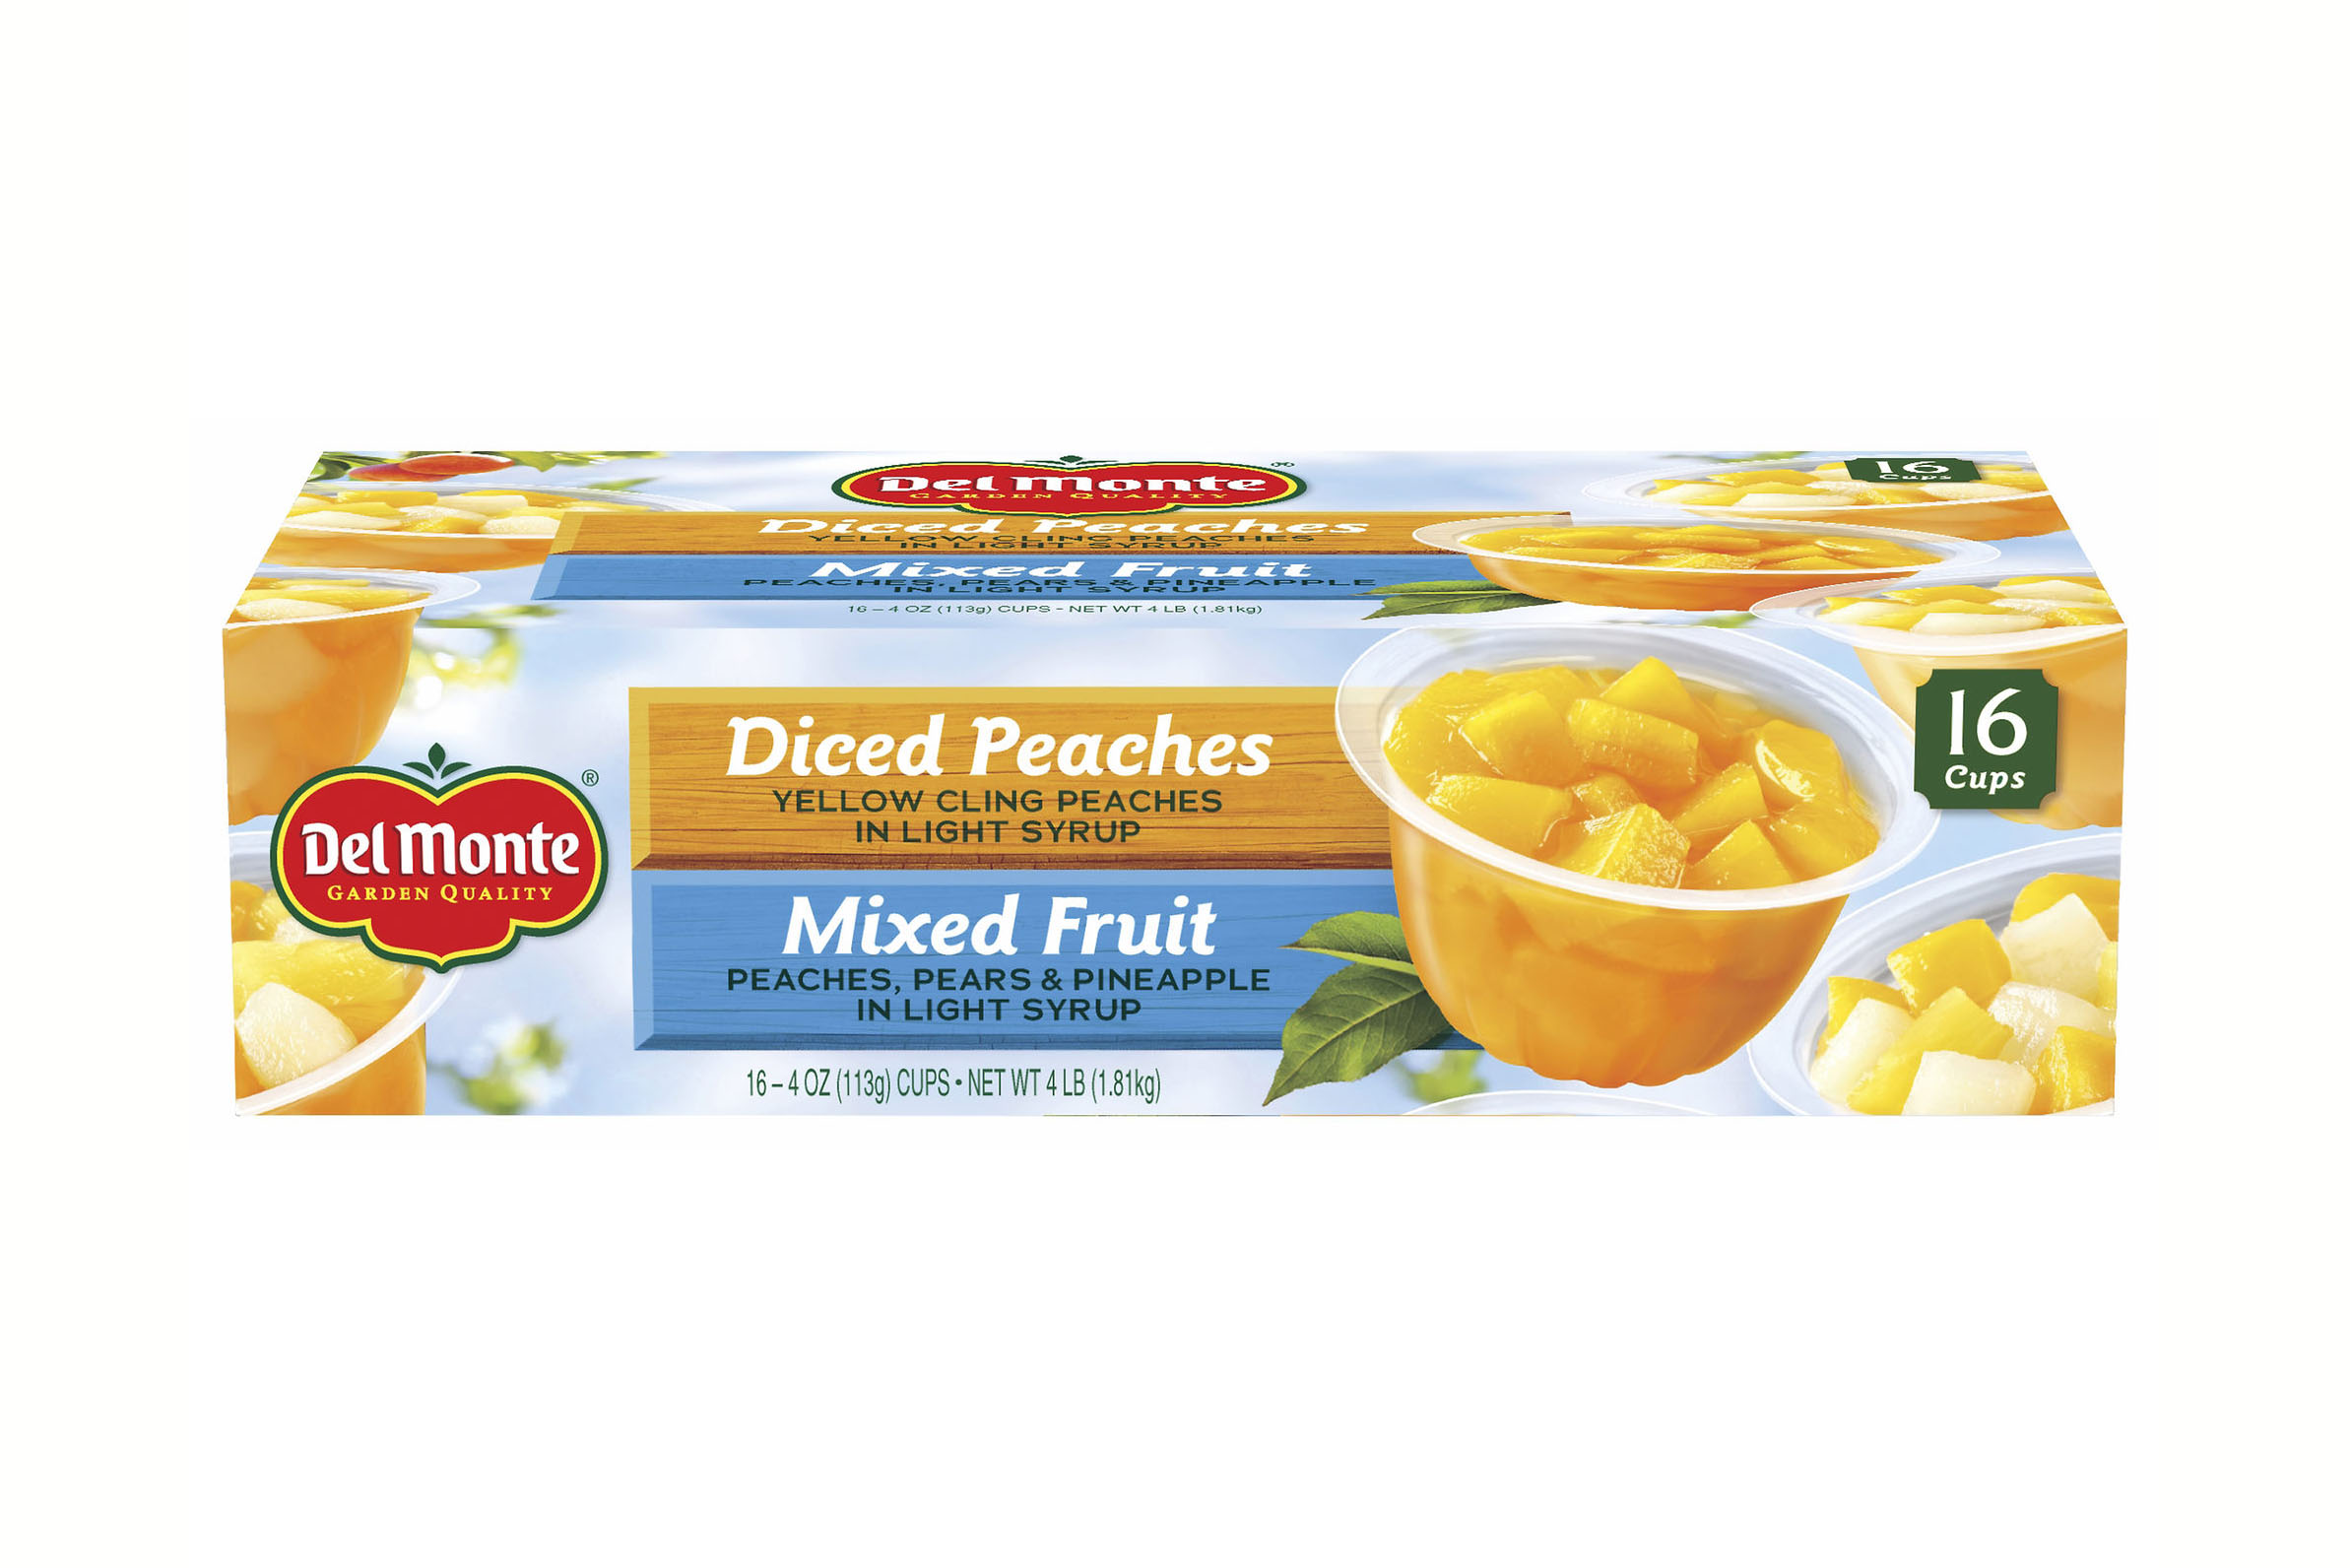 Diced Peaches - 4.5 stars - $15 (Prime)